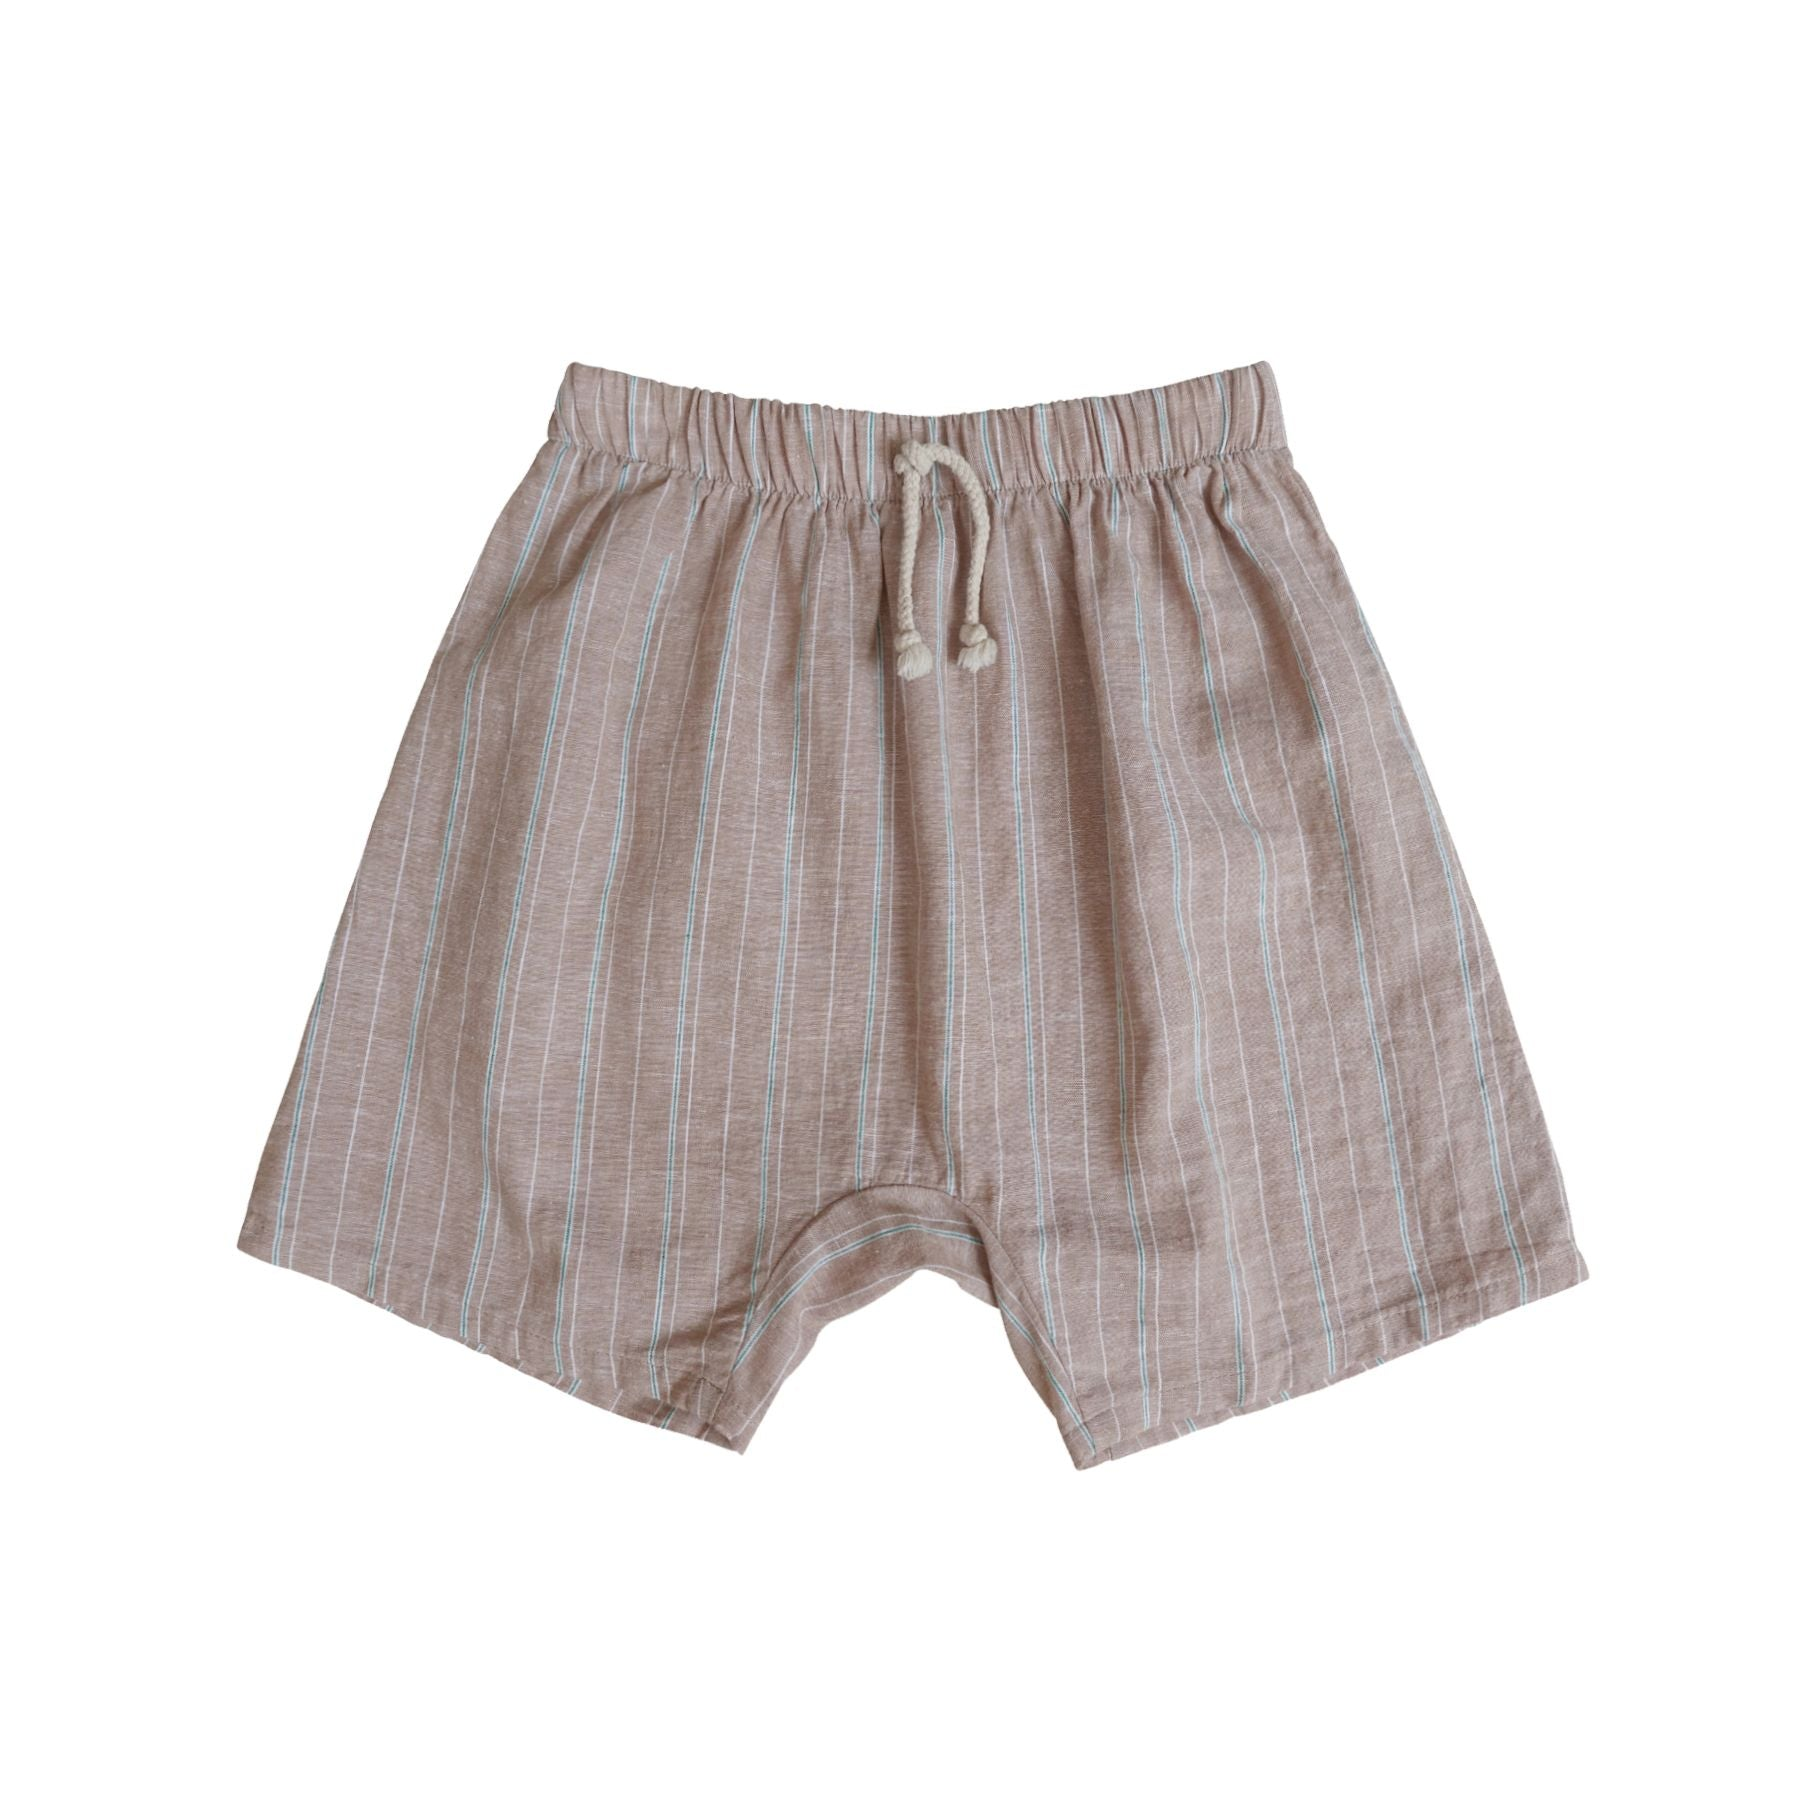 Oli Harem Short Khaki Stripes - Zirkuss